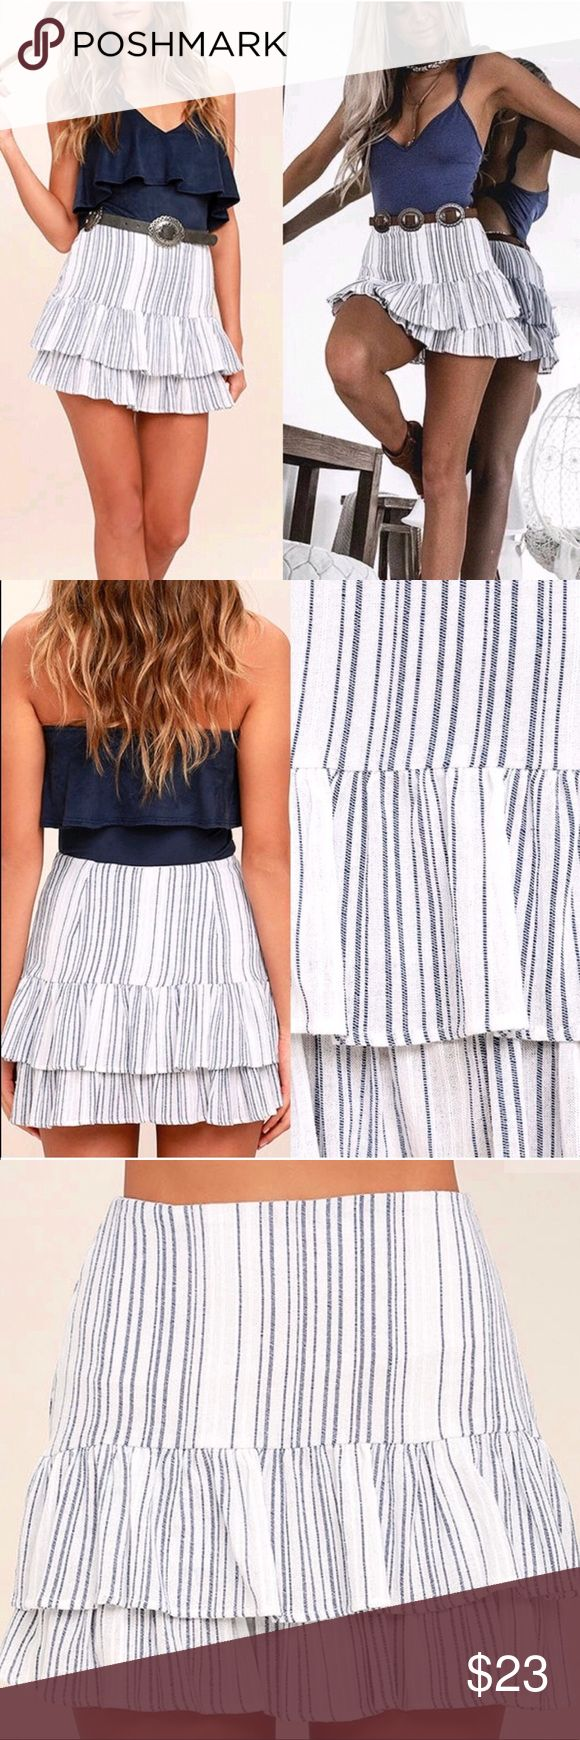 🆕 Hampton's Blue and White Striped Skirt This Blue and White Striped Mini Skirt is the quintessential beach day ensemble! Gauzy woven blue and white striped fabric hugs you at the hips, then flares into a flirty, ruffled trumpet skirt. Hidden side zipper/clasp. Belt not included. As Seen On Kirsty of @kirstyfleming! Fully lined. Self: 100% Cotton. Lining: 100% Polyester. Hand Wash Cold. Made with Love in the U.S.A. Lulu's Skirts Mini